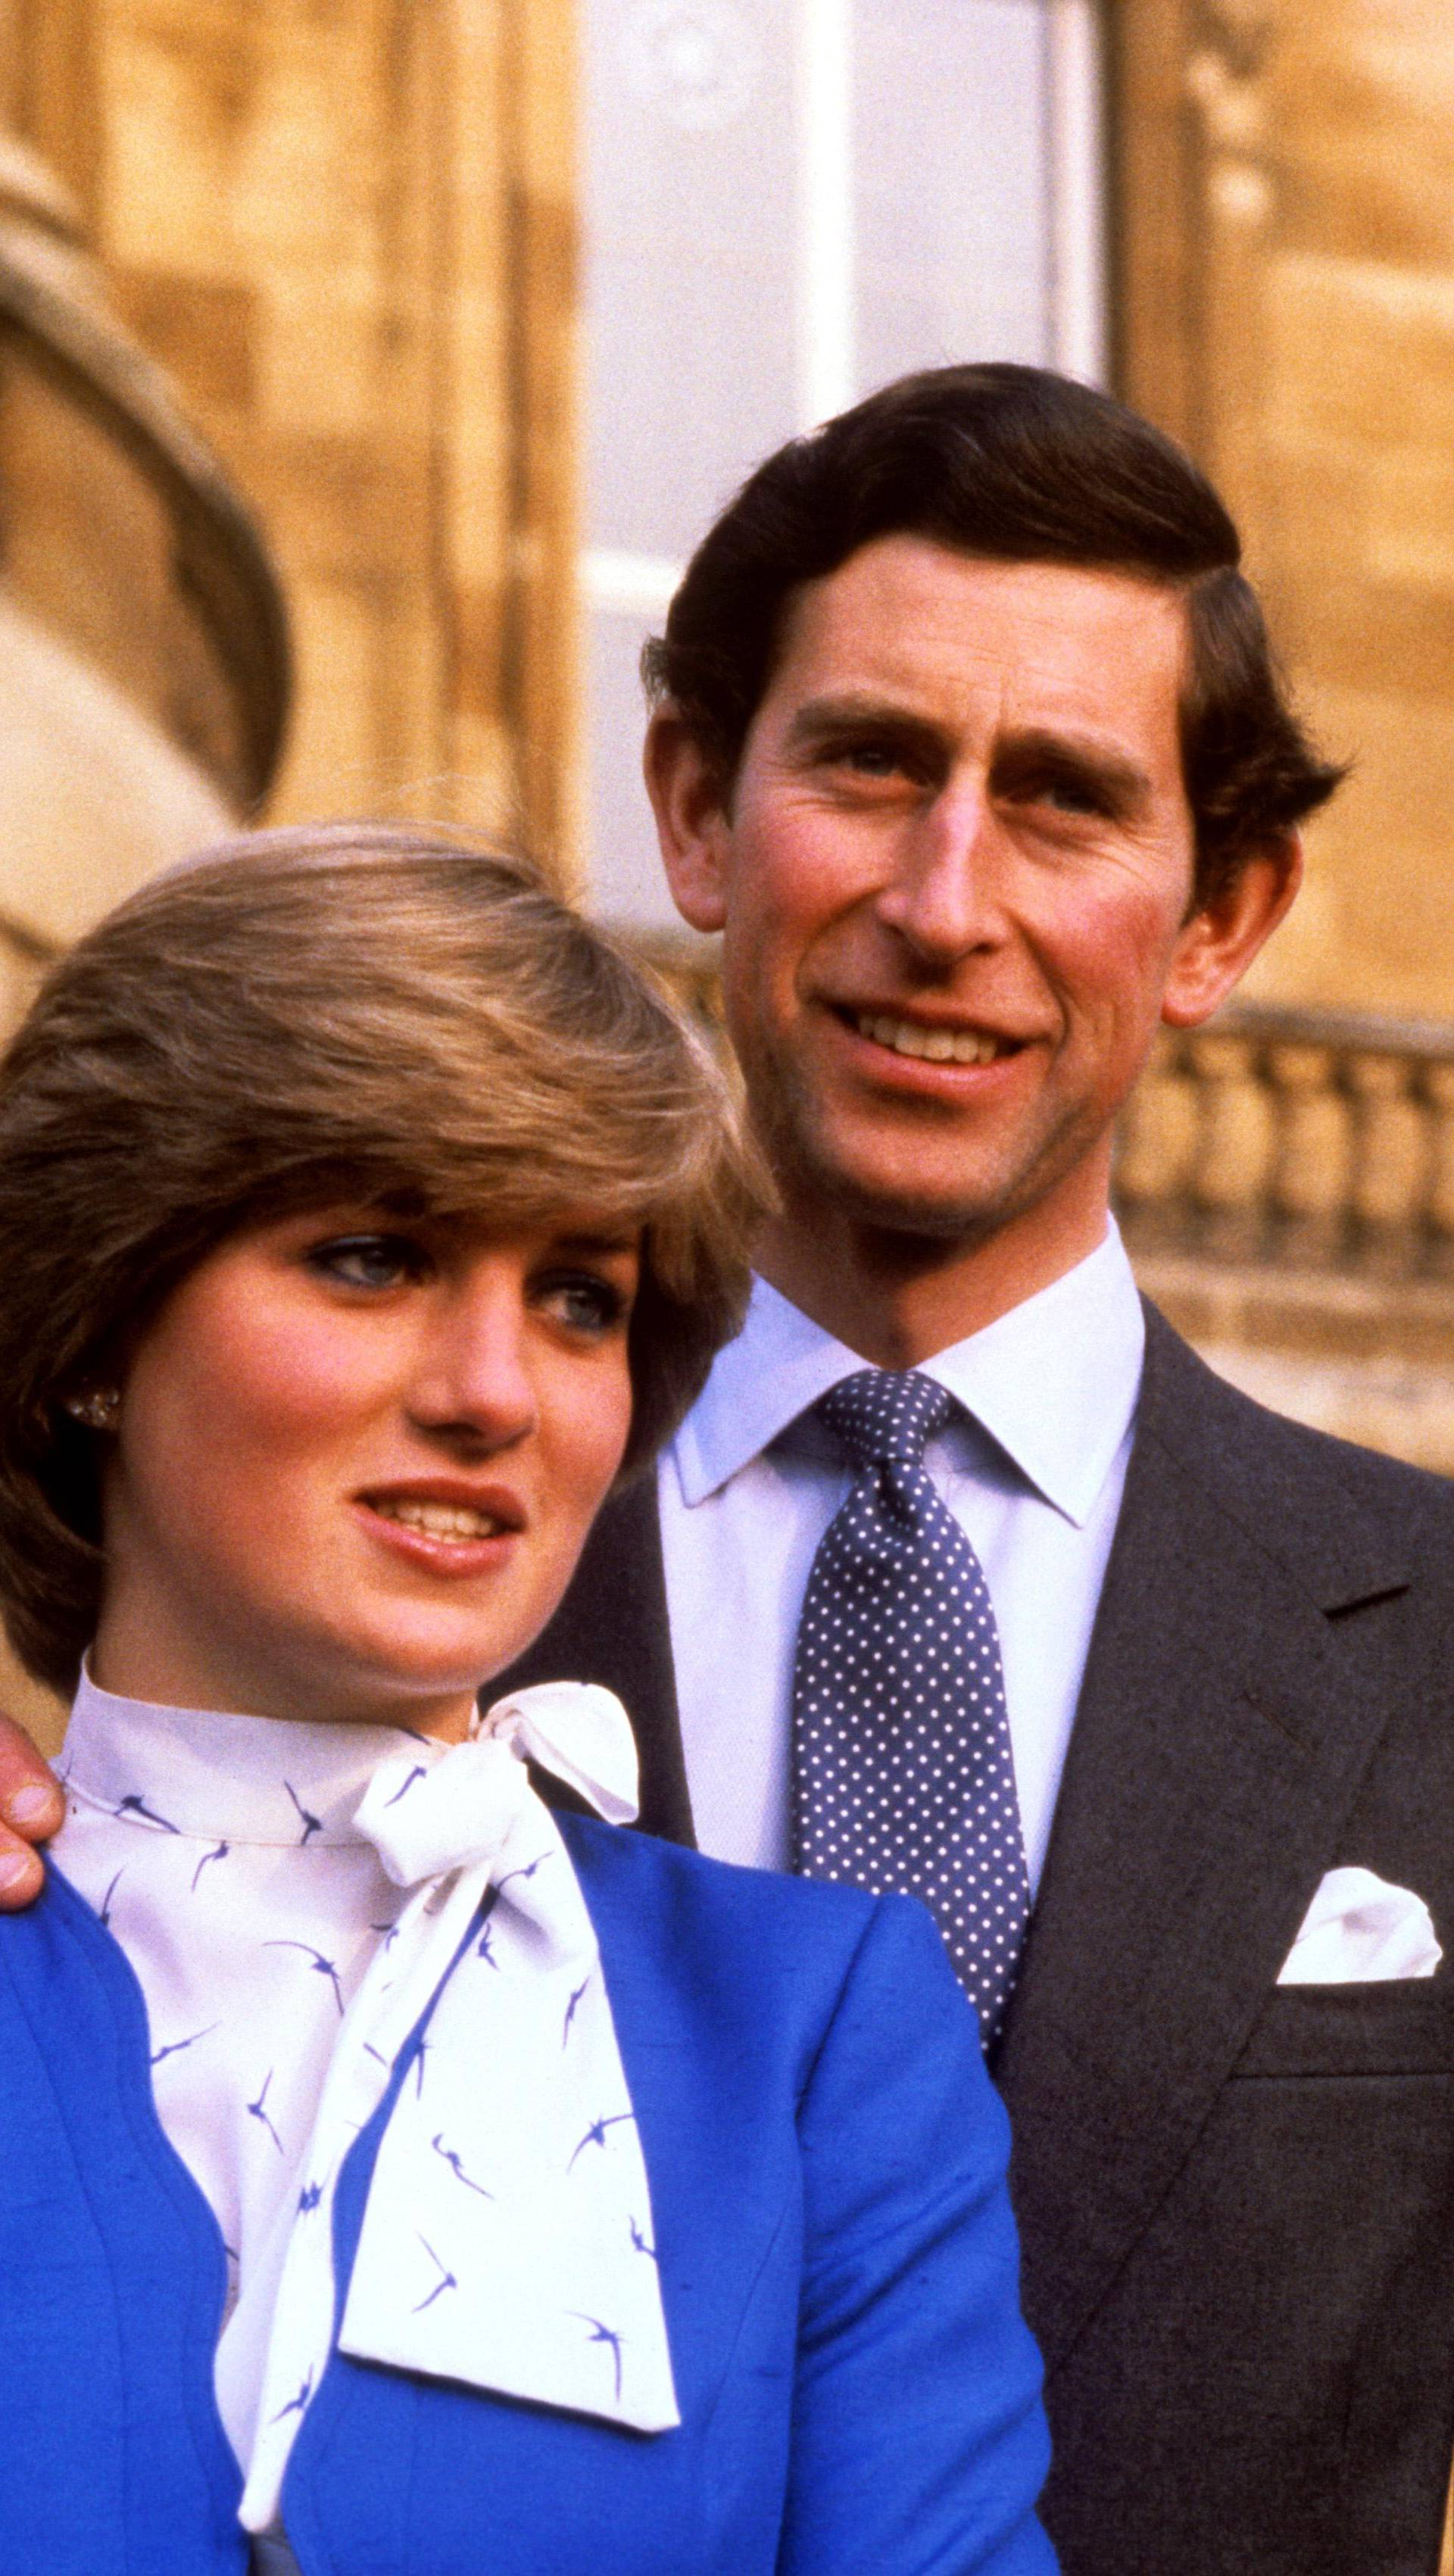 PRINCE CHARLES AND LADY DIANA SPENCER ENGAGEMENT